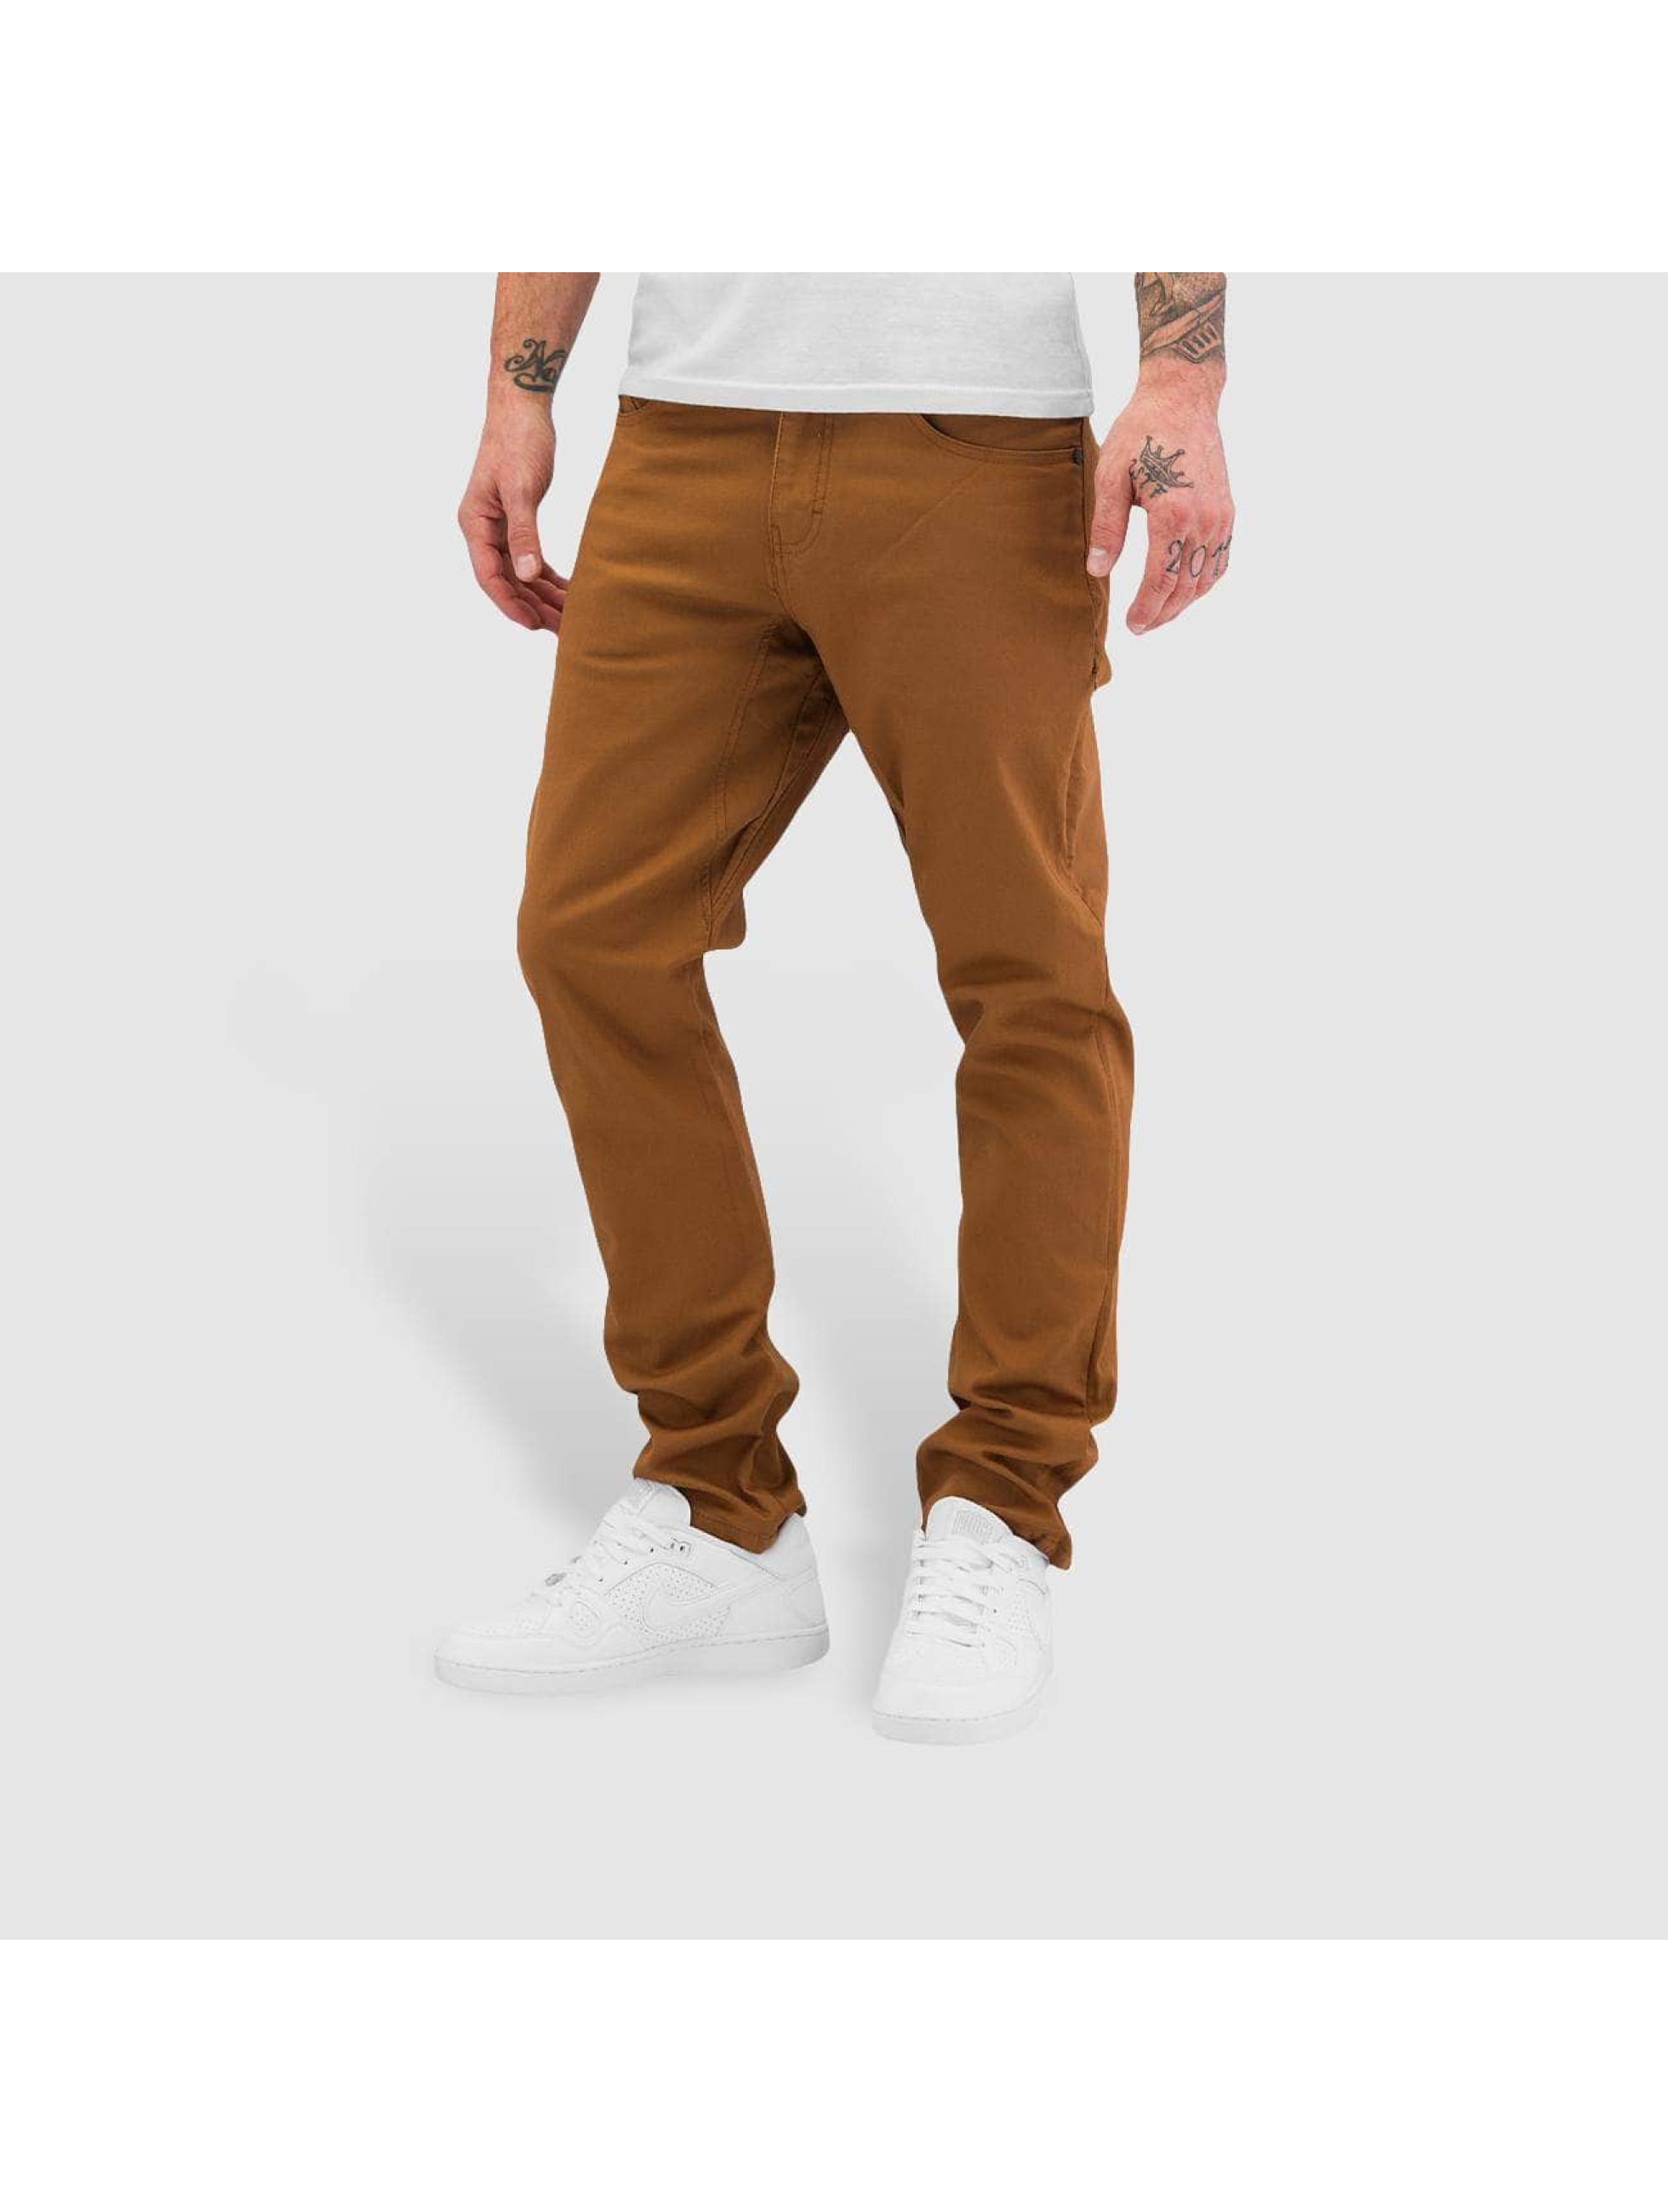 Nike Männer Chino SB 5 Pocket in braun